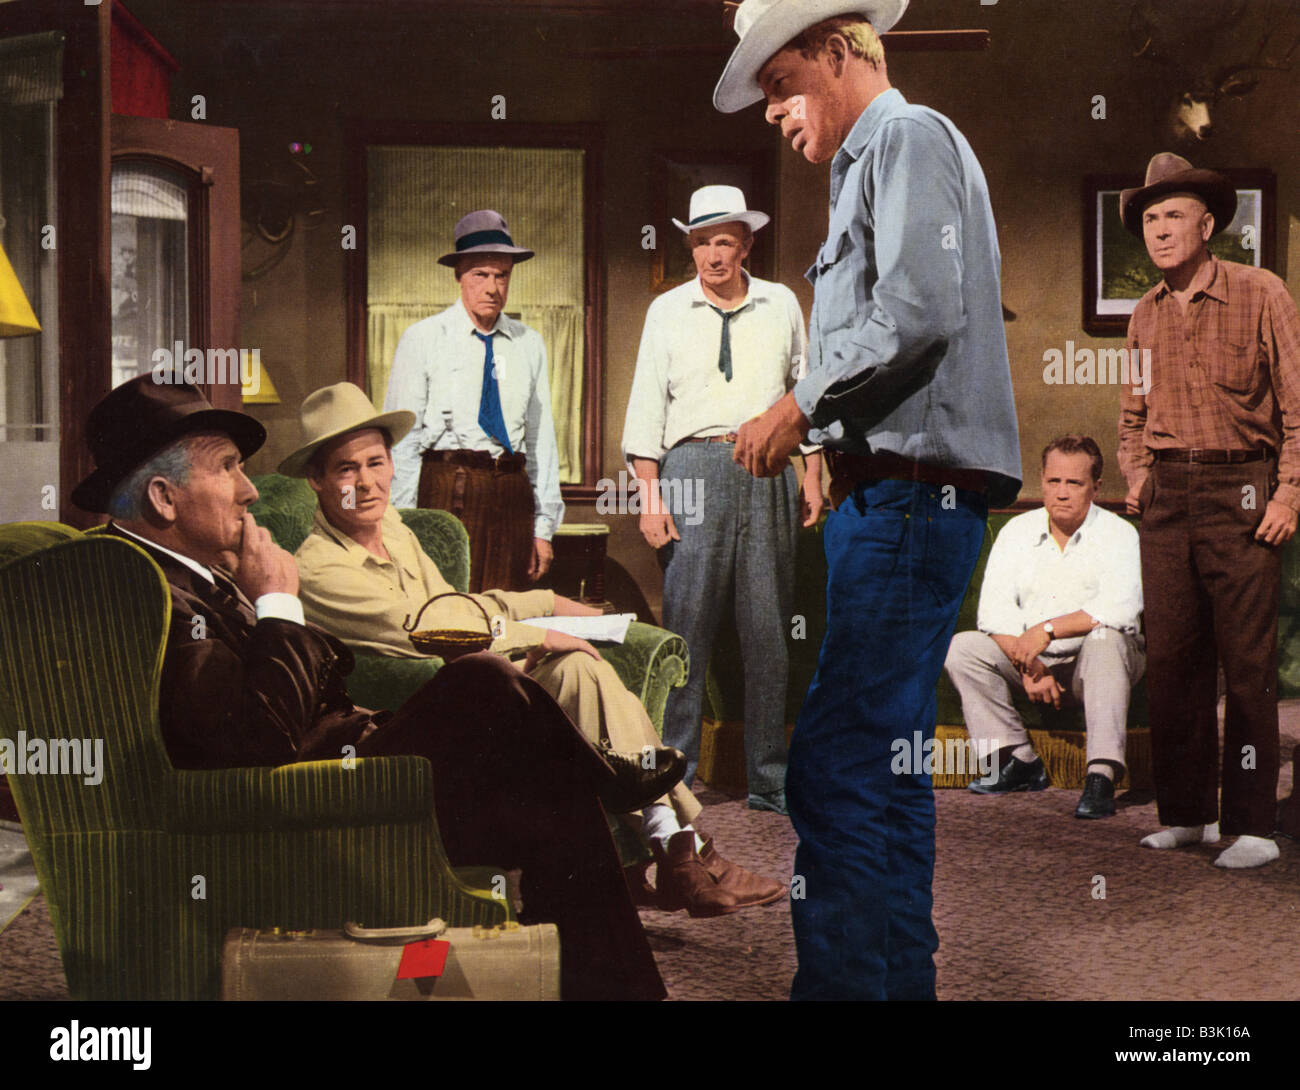 Bad Day At Black Rock 1955 Mgm Film With Lee Marvin Centre And Stock Photo Alamy